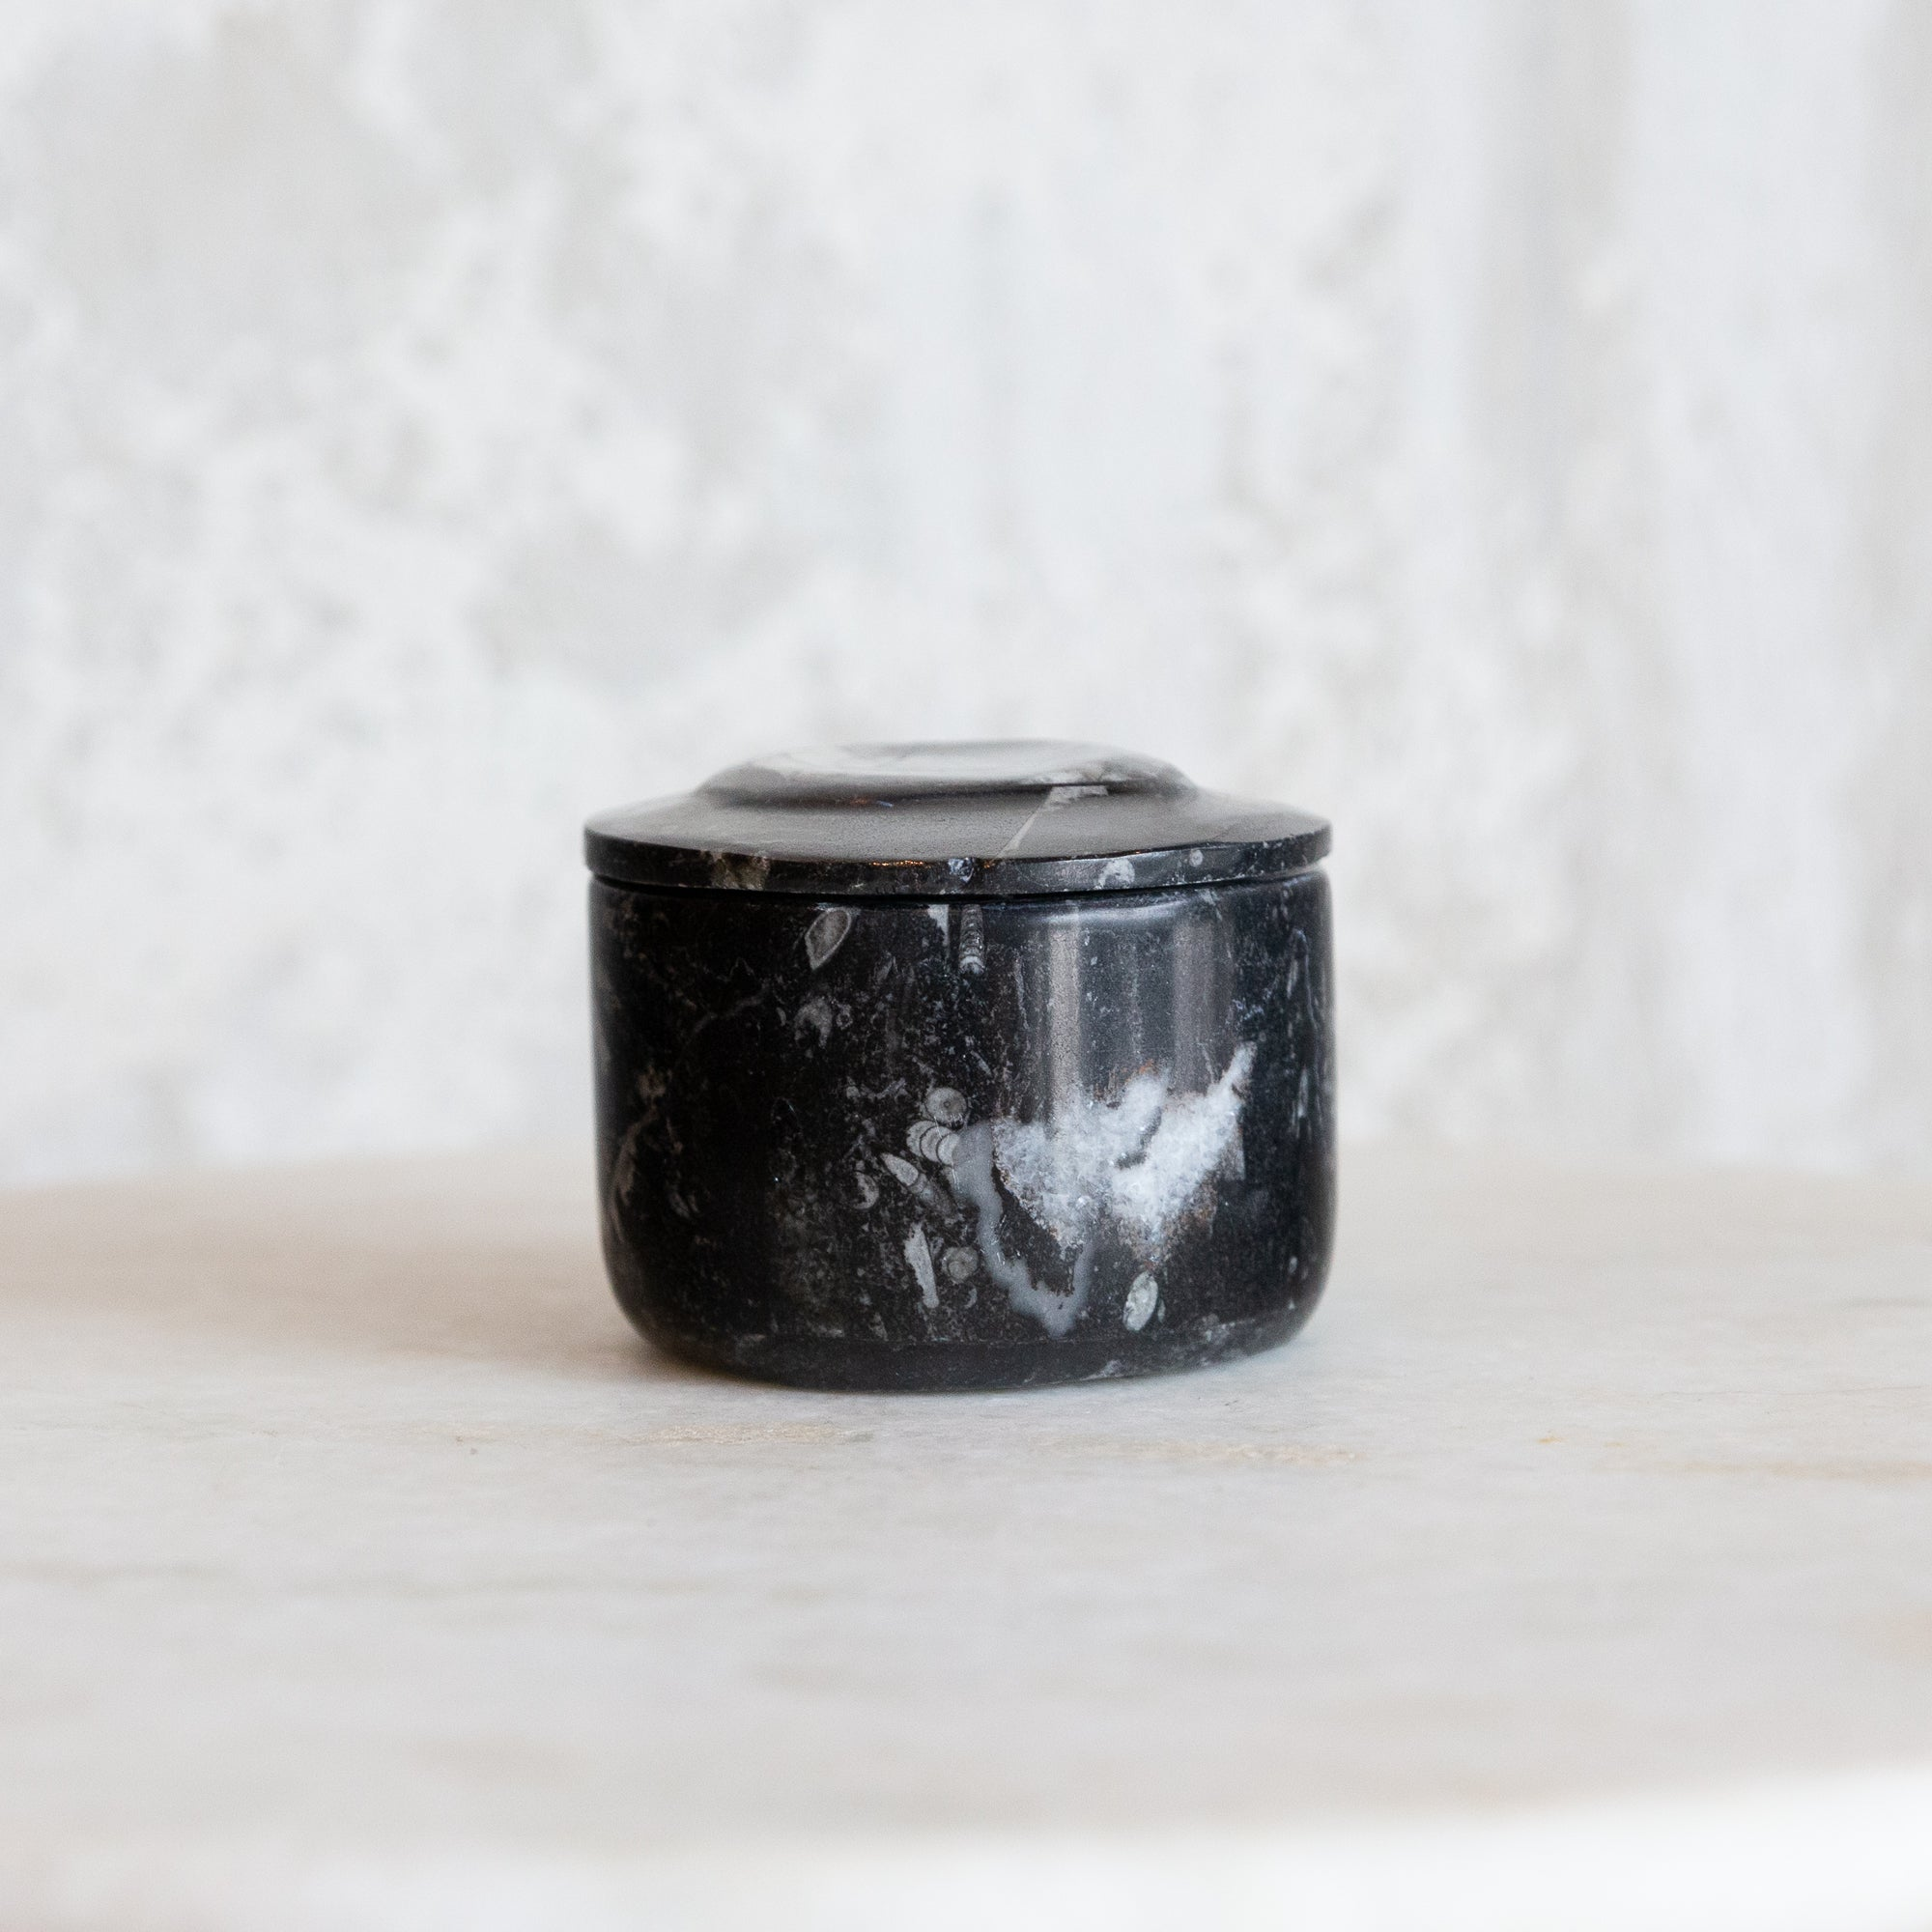 Onyx Box with Lid - Black Fossil